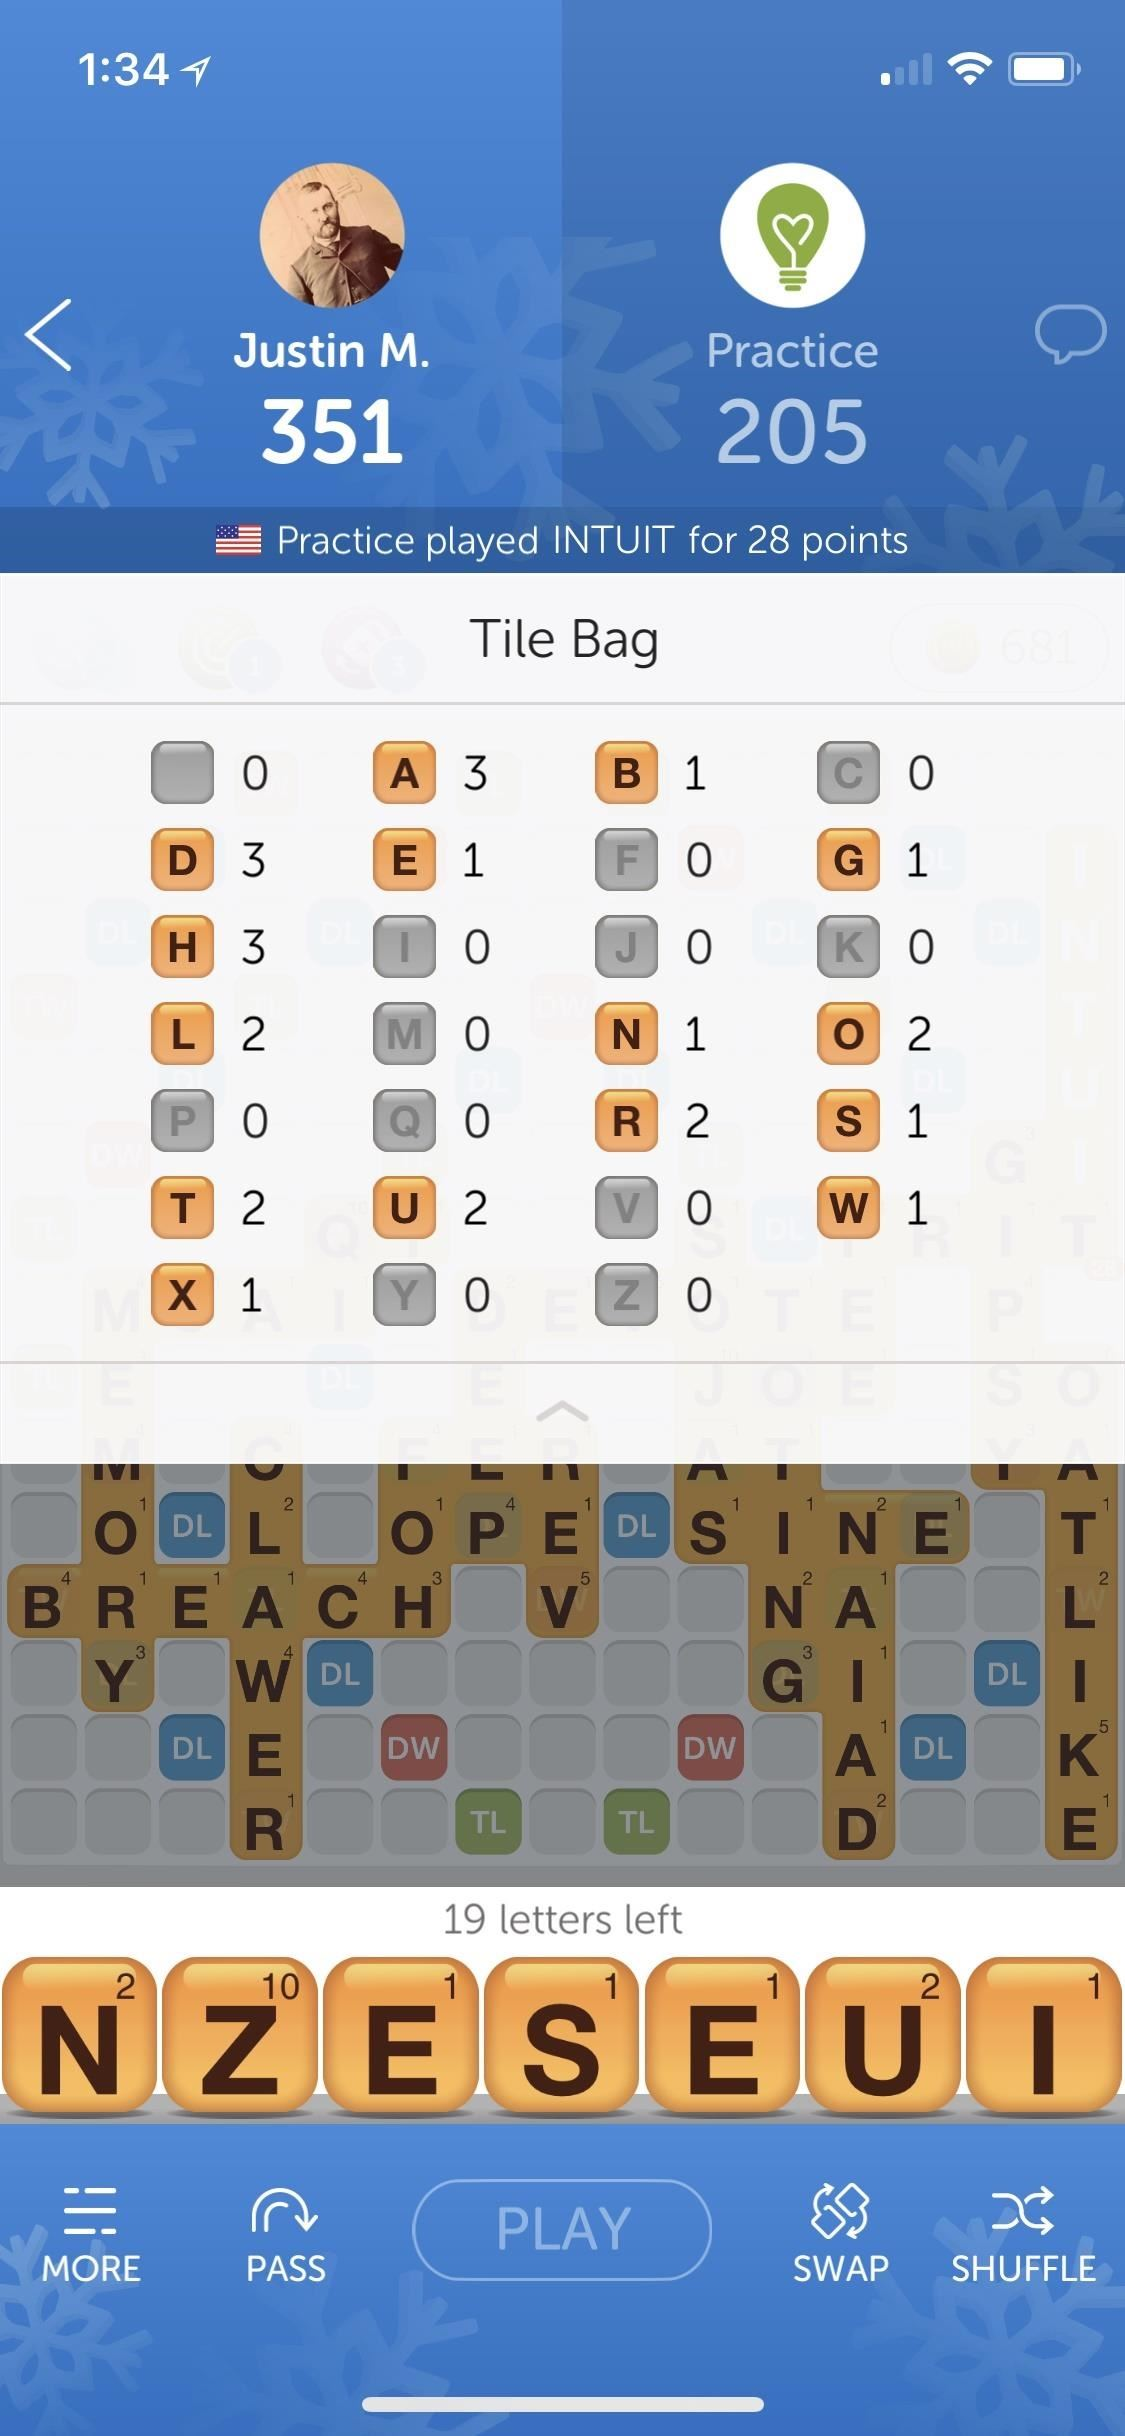 How to score in words with friends with the remaining Tiles Bag